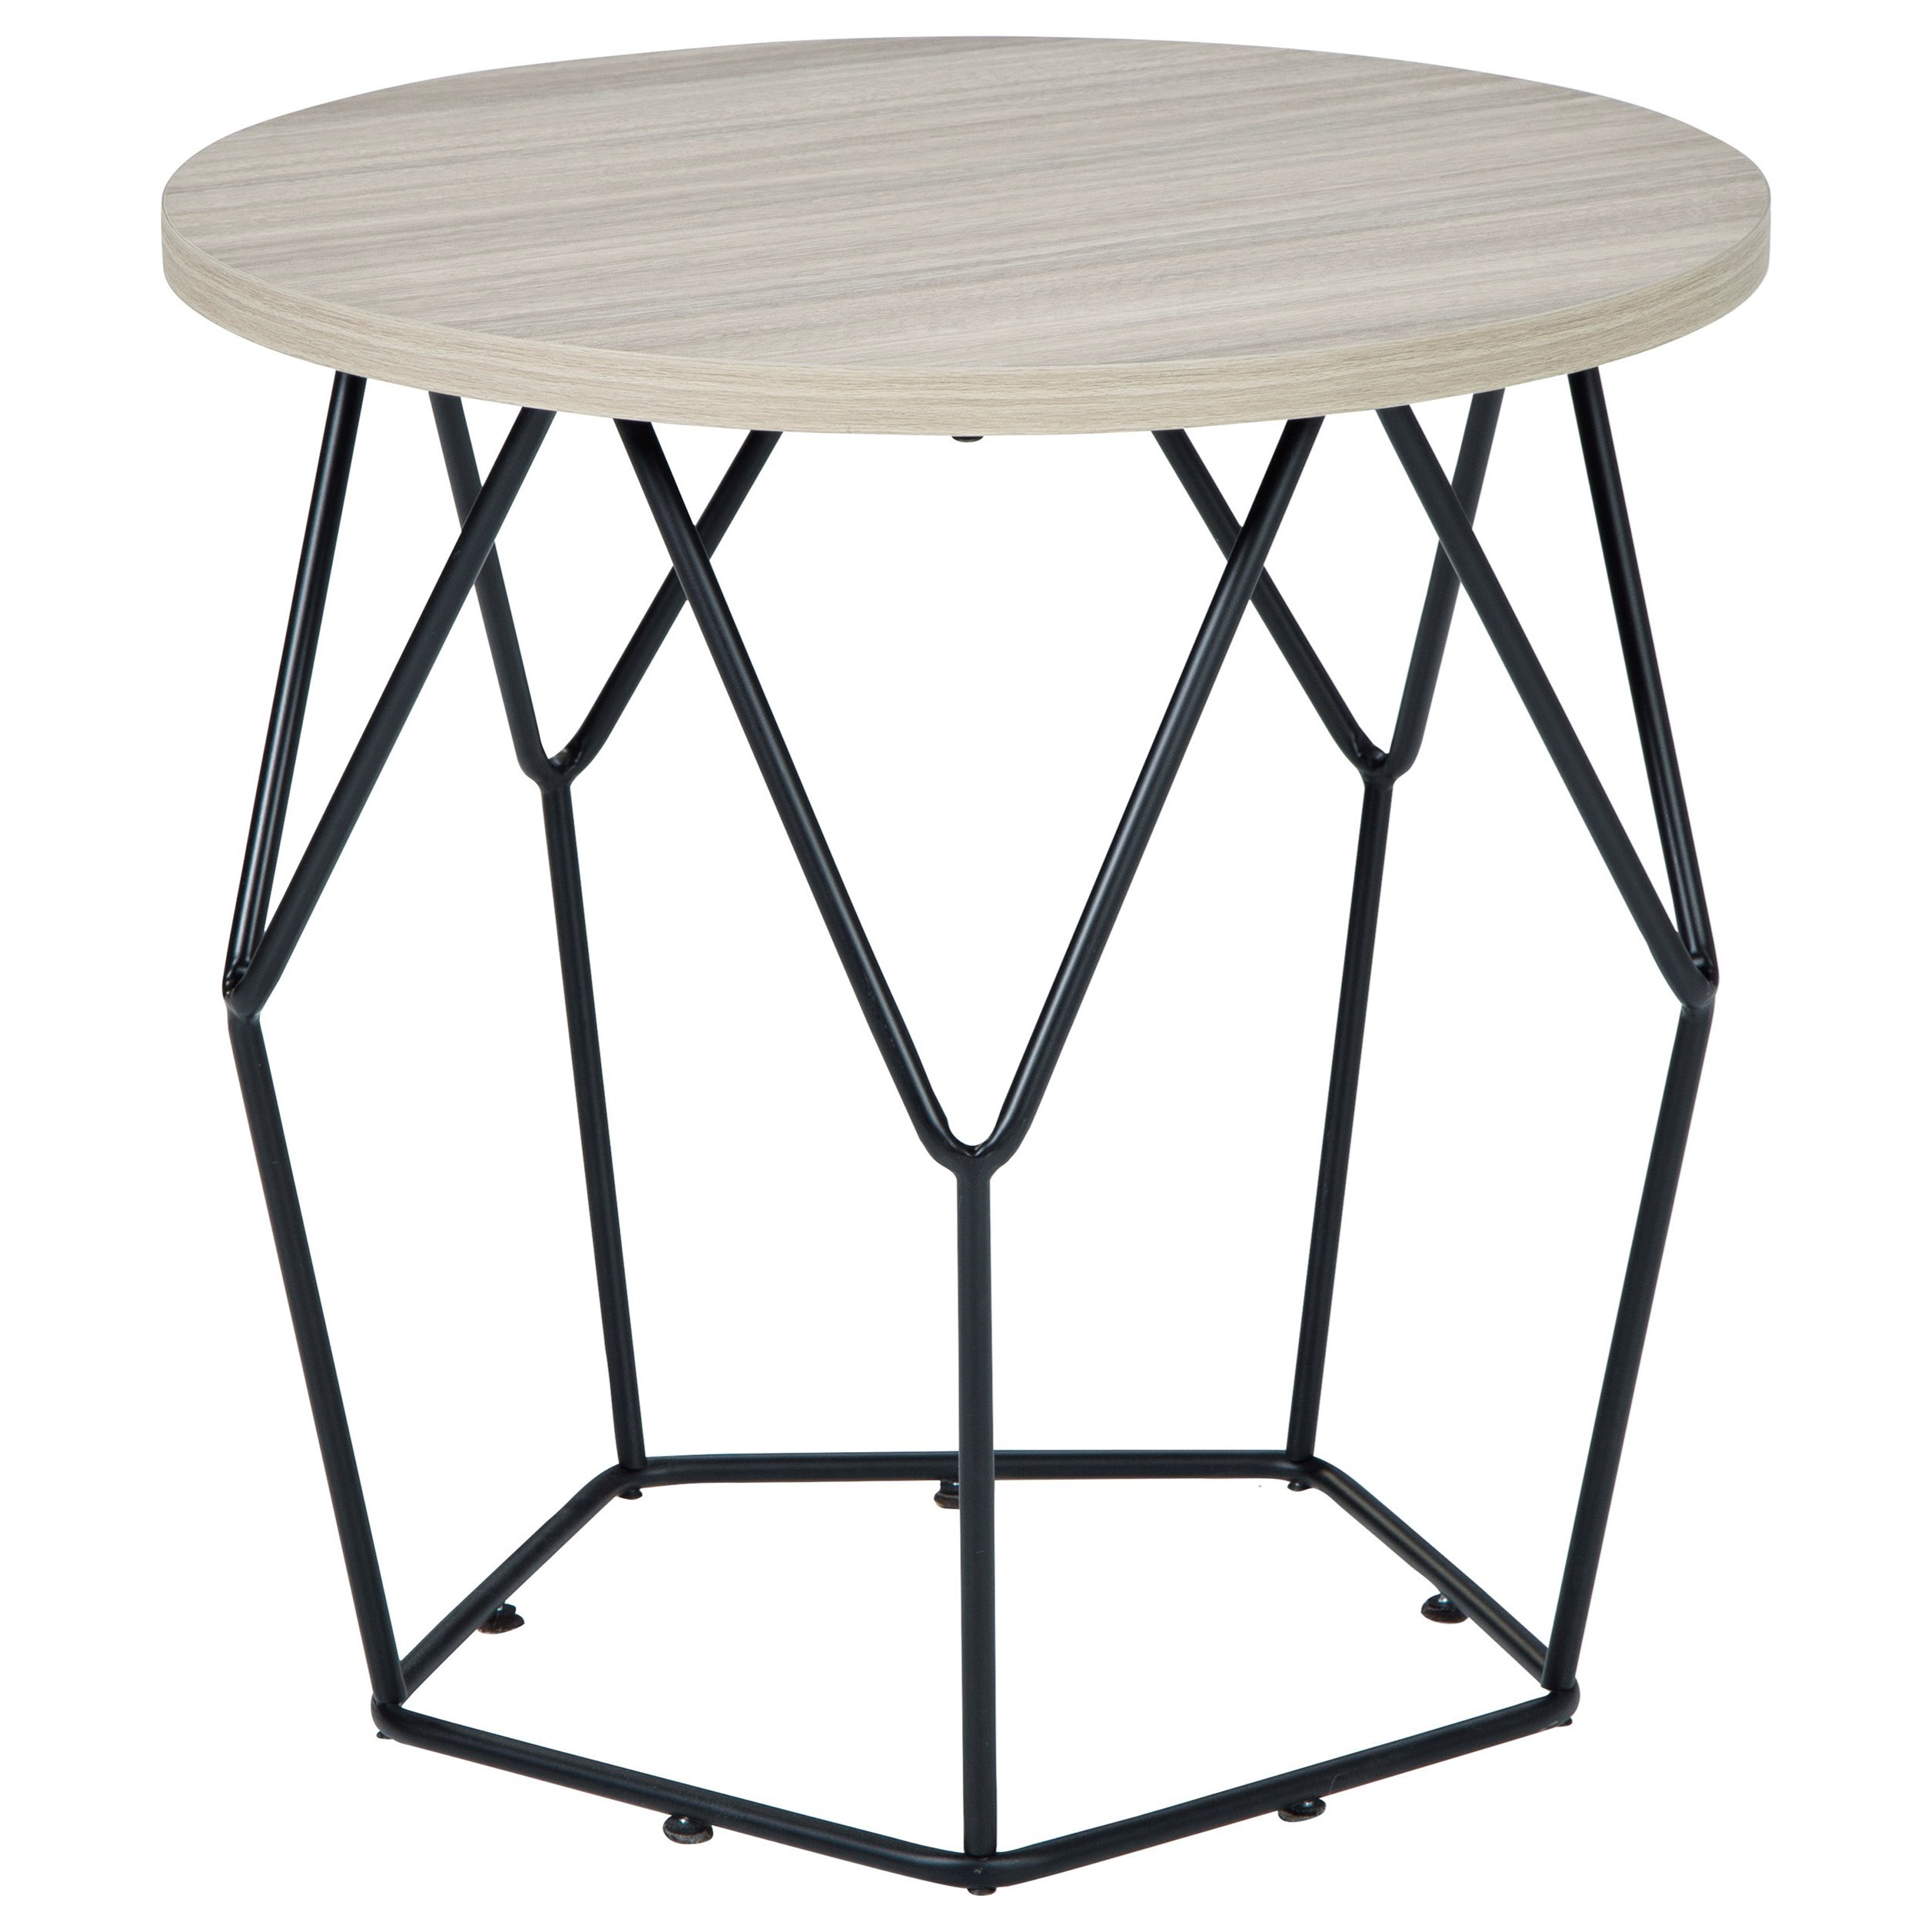 Waylowe Round End Table by Signature Design by Ashley at Rife's Home Furniture